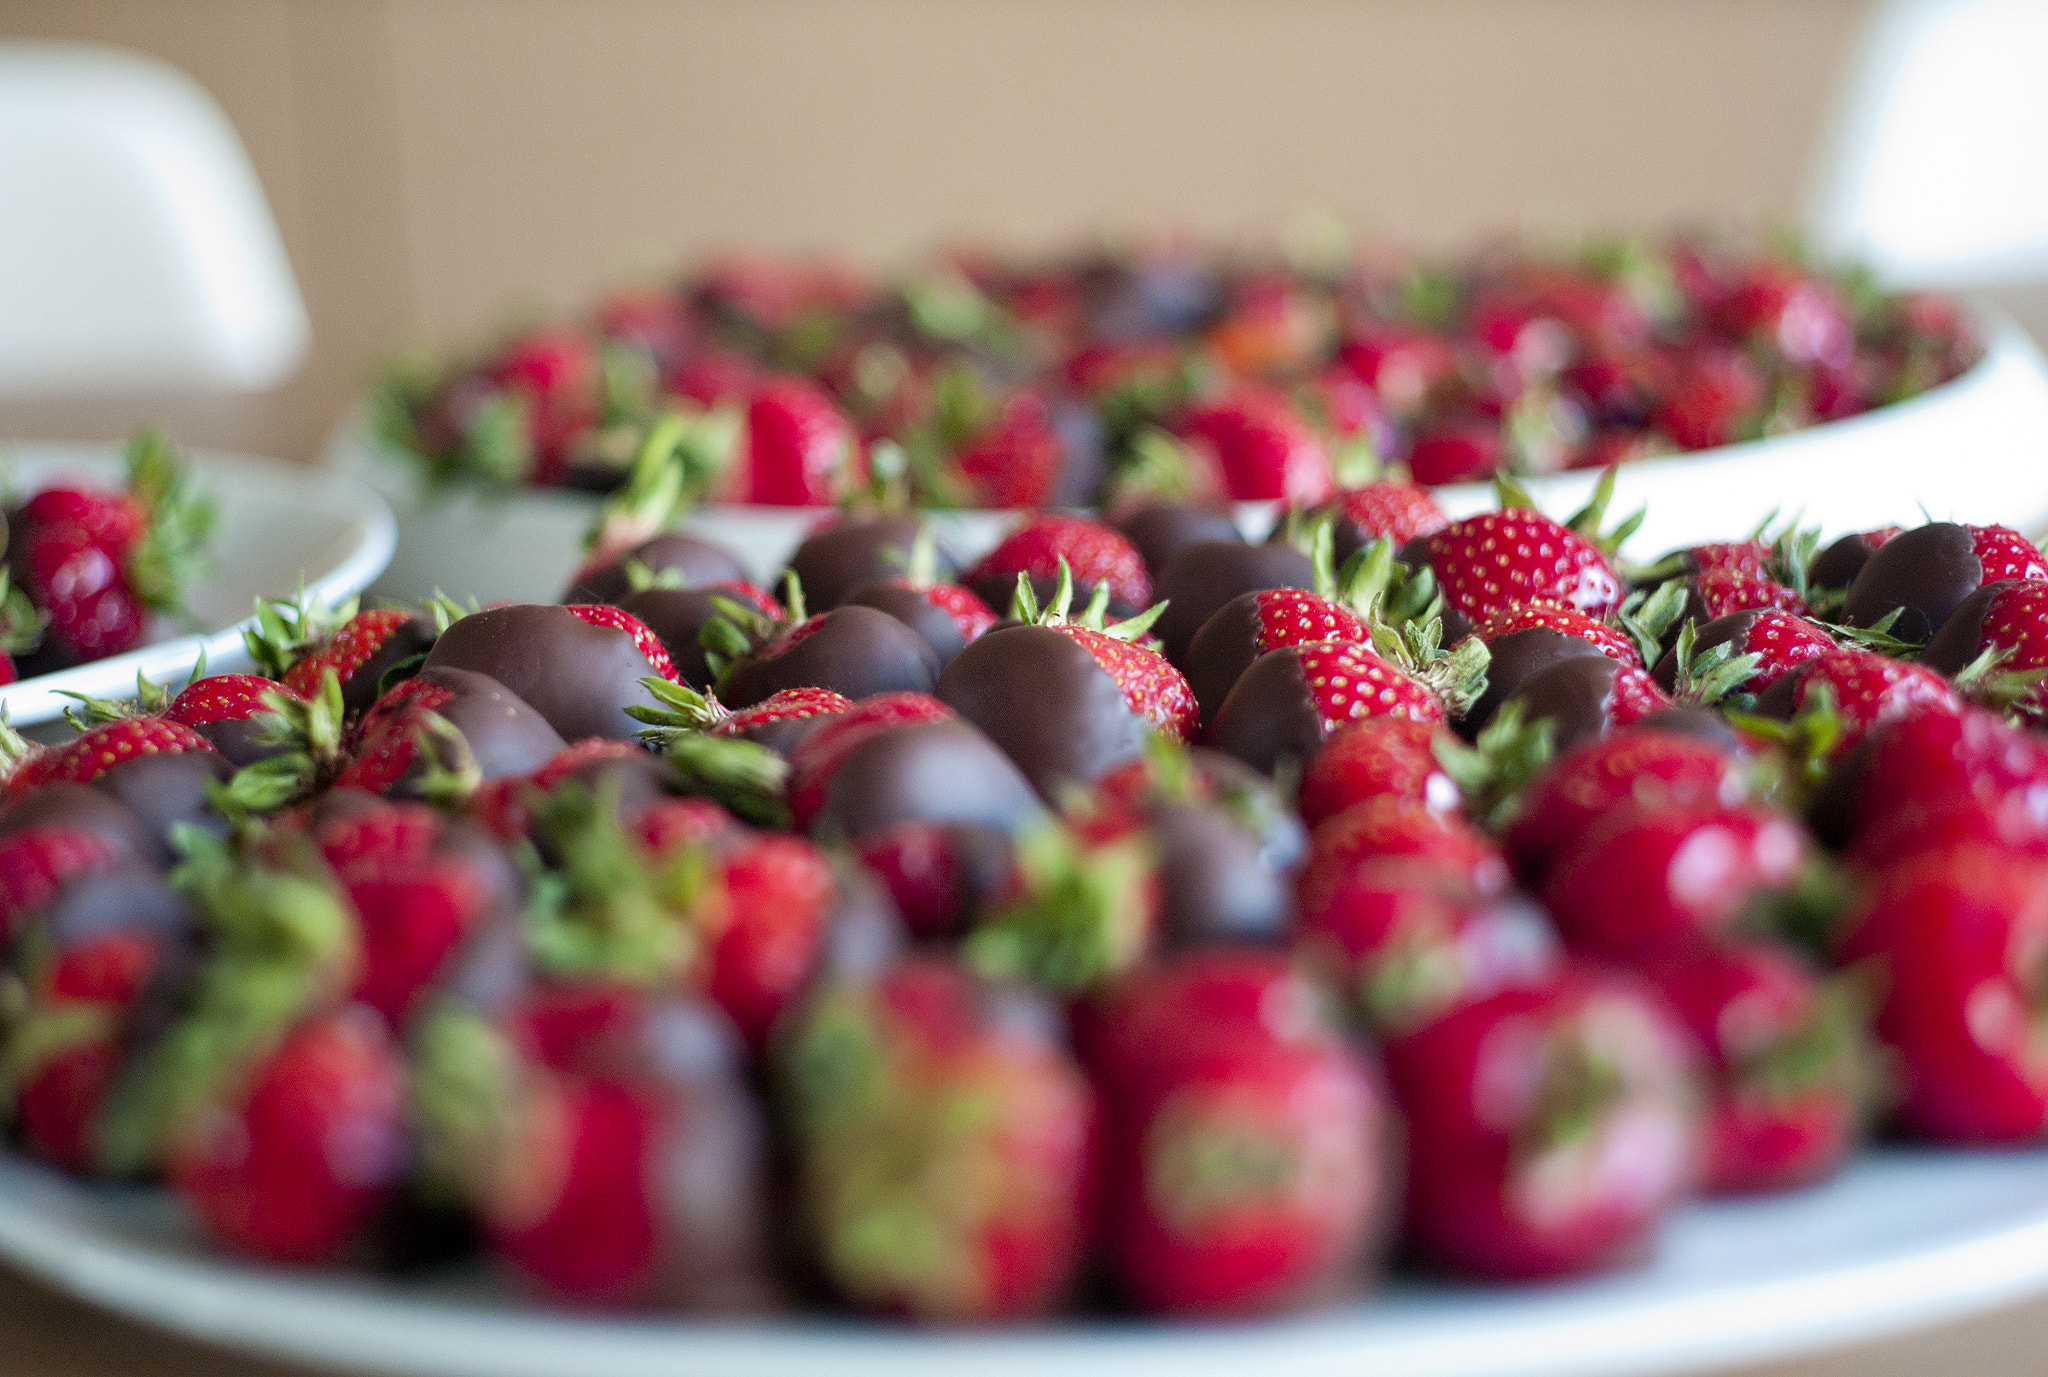 Photograph Chocolate Strawberries by erik spiekermann on 500px